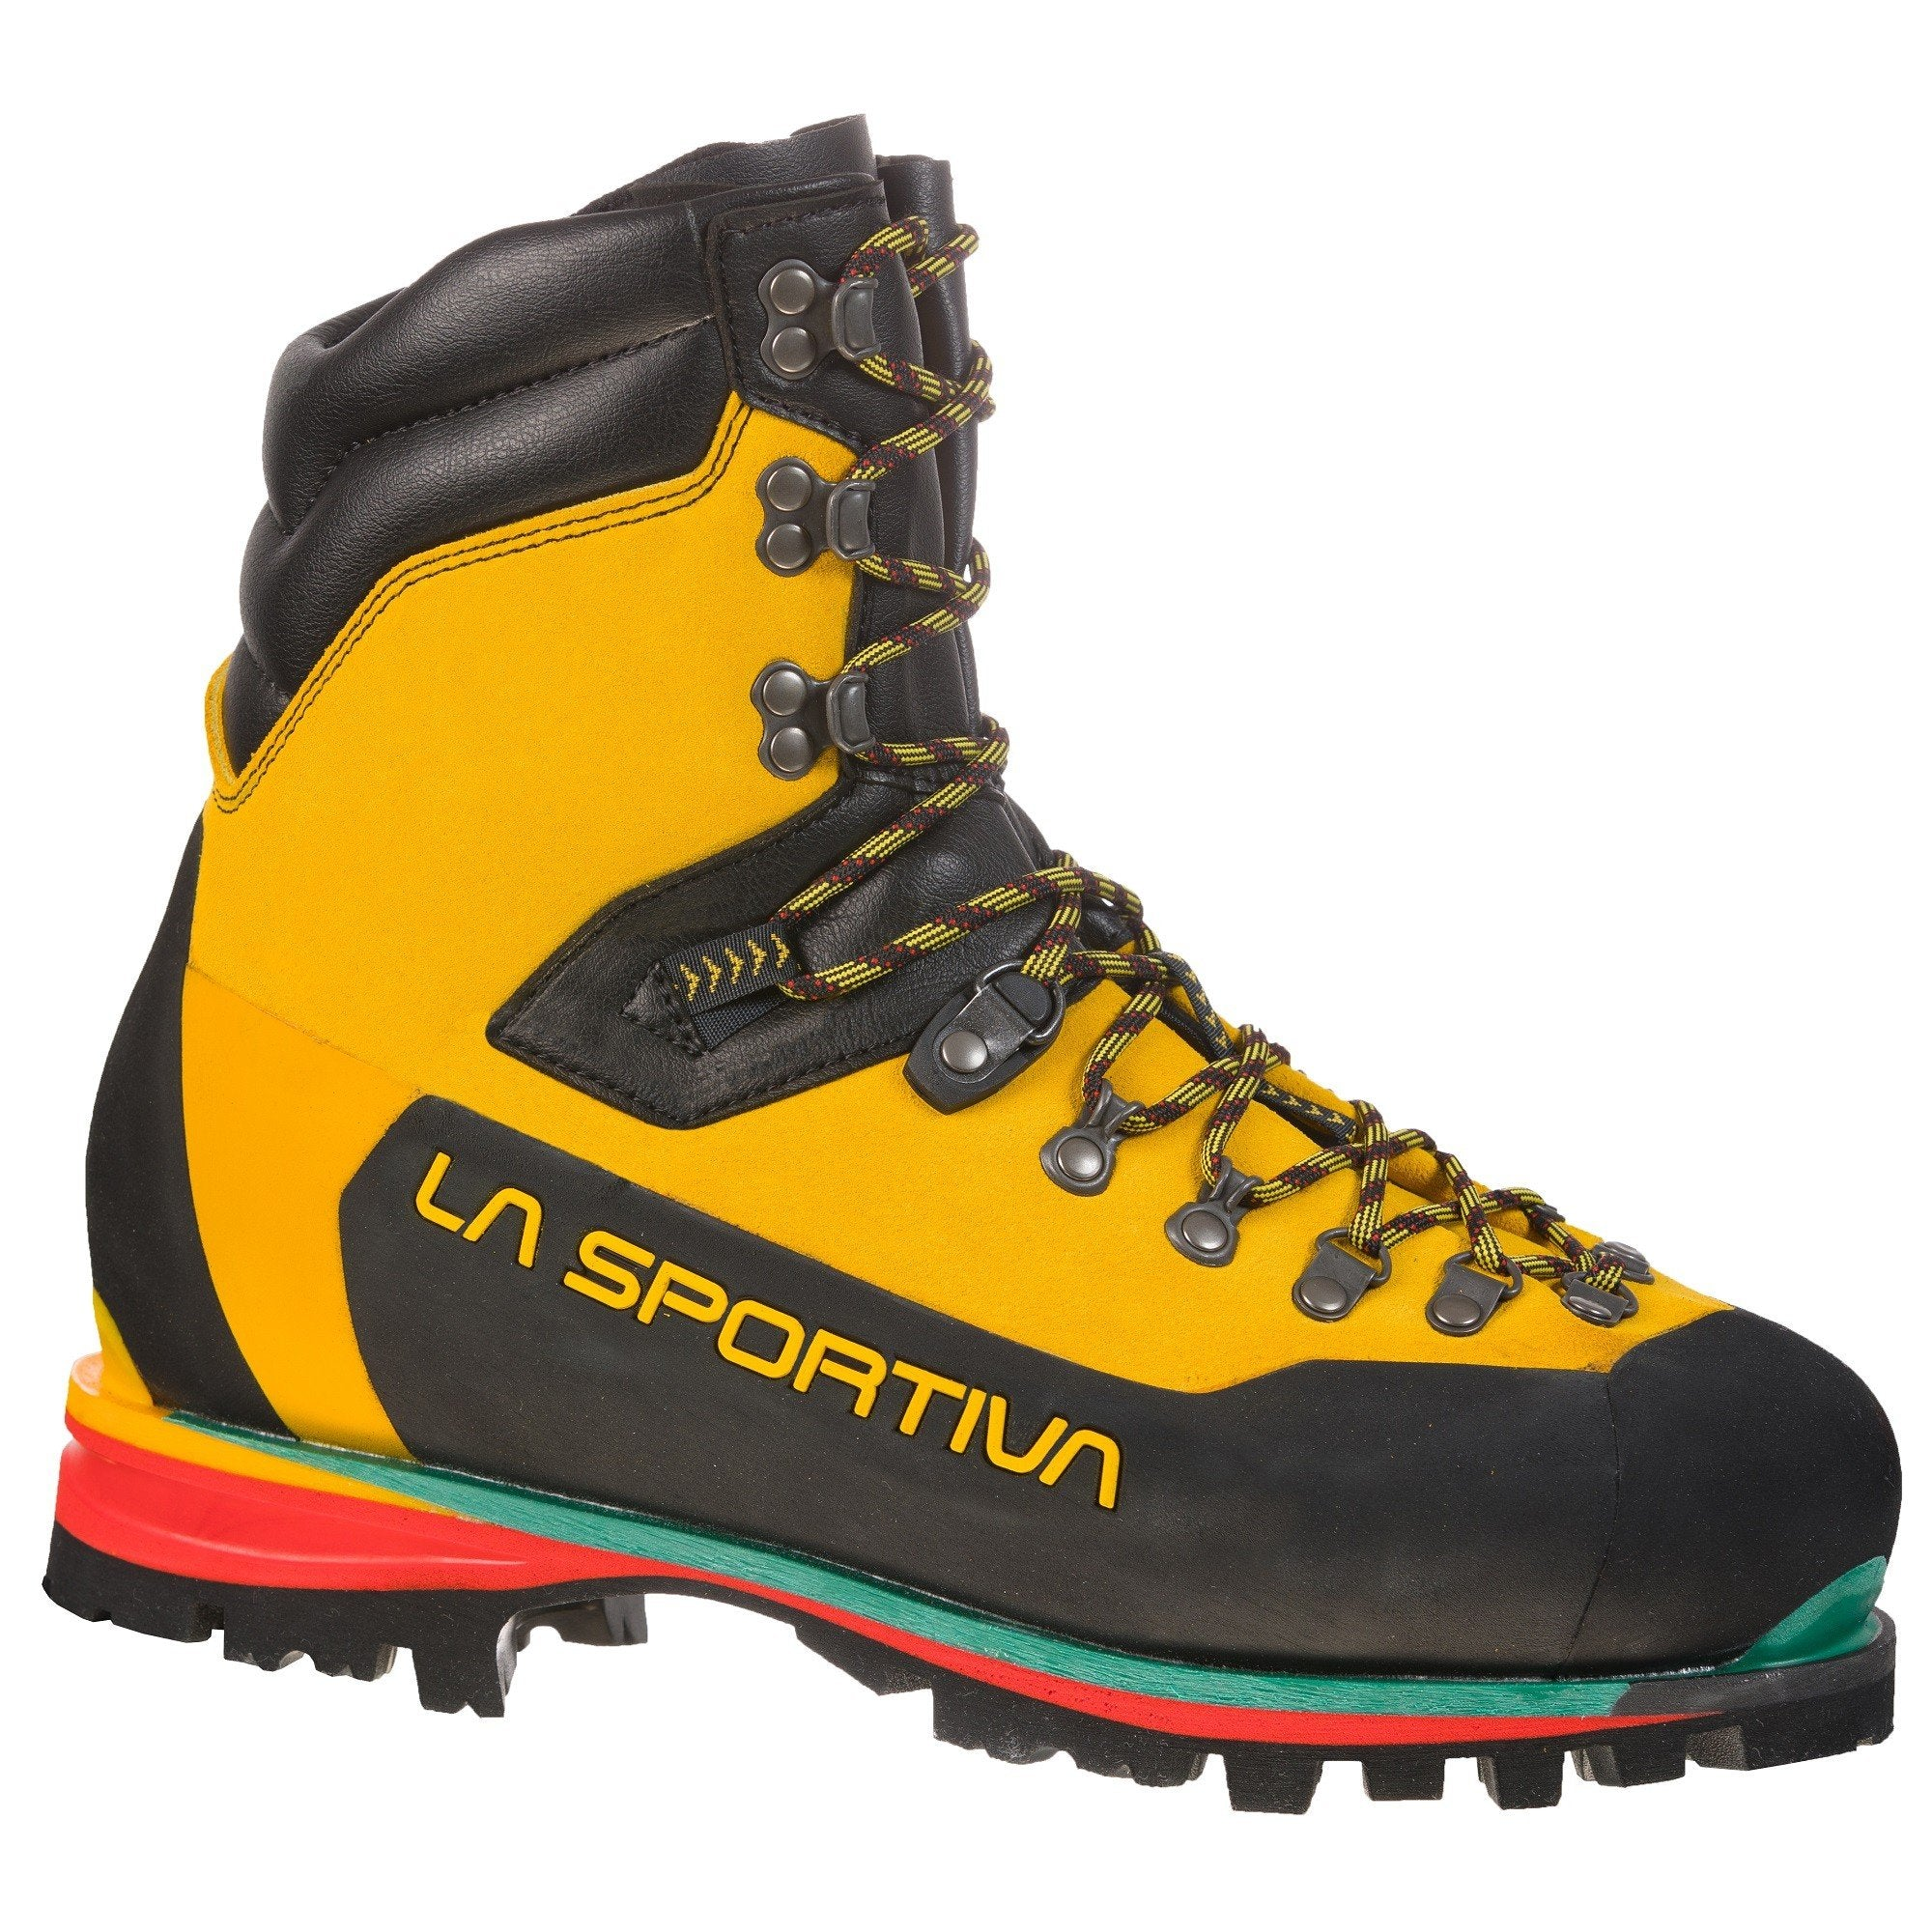 Side of La Sportiva Nepal Extreme in Black & Yellow